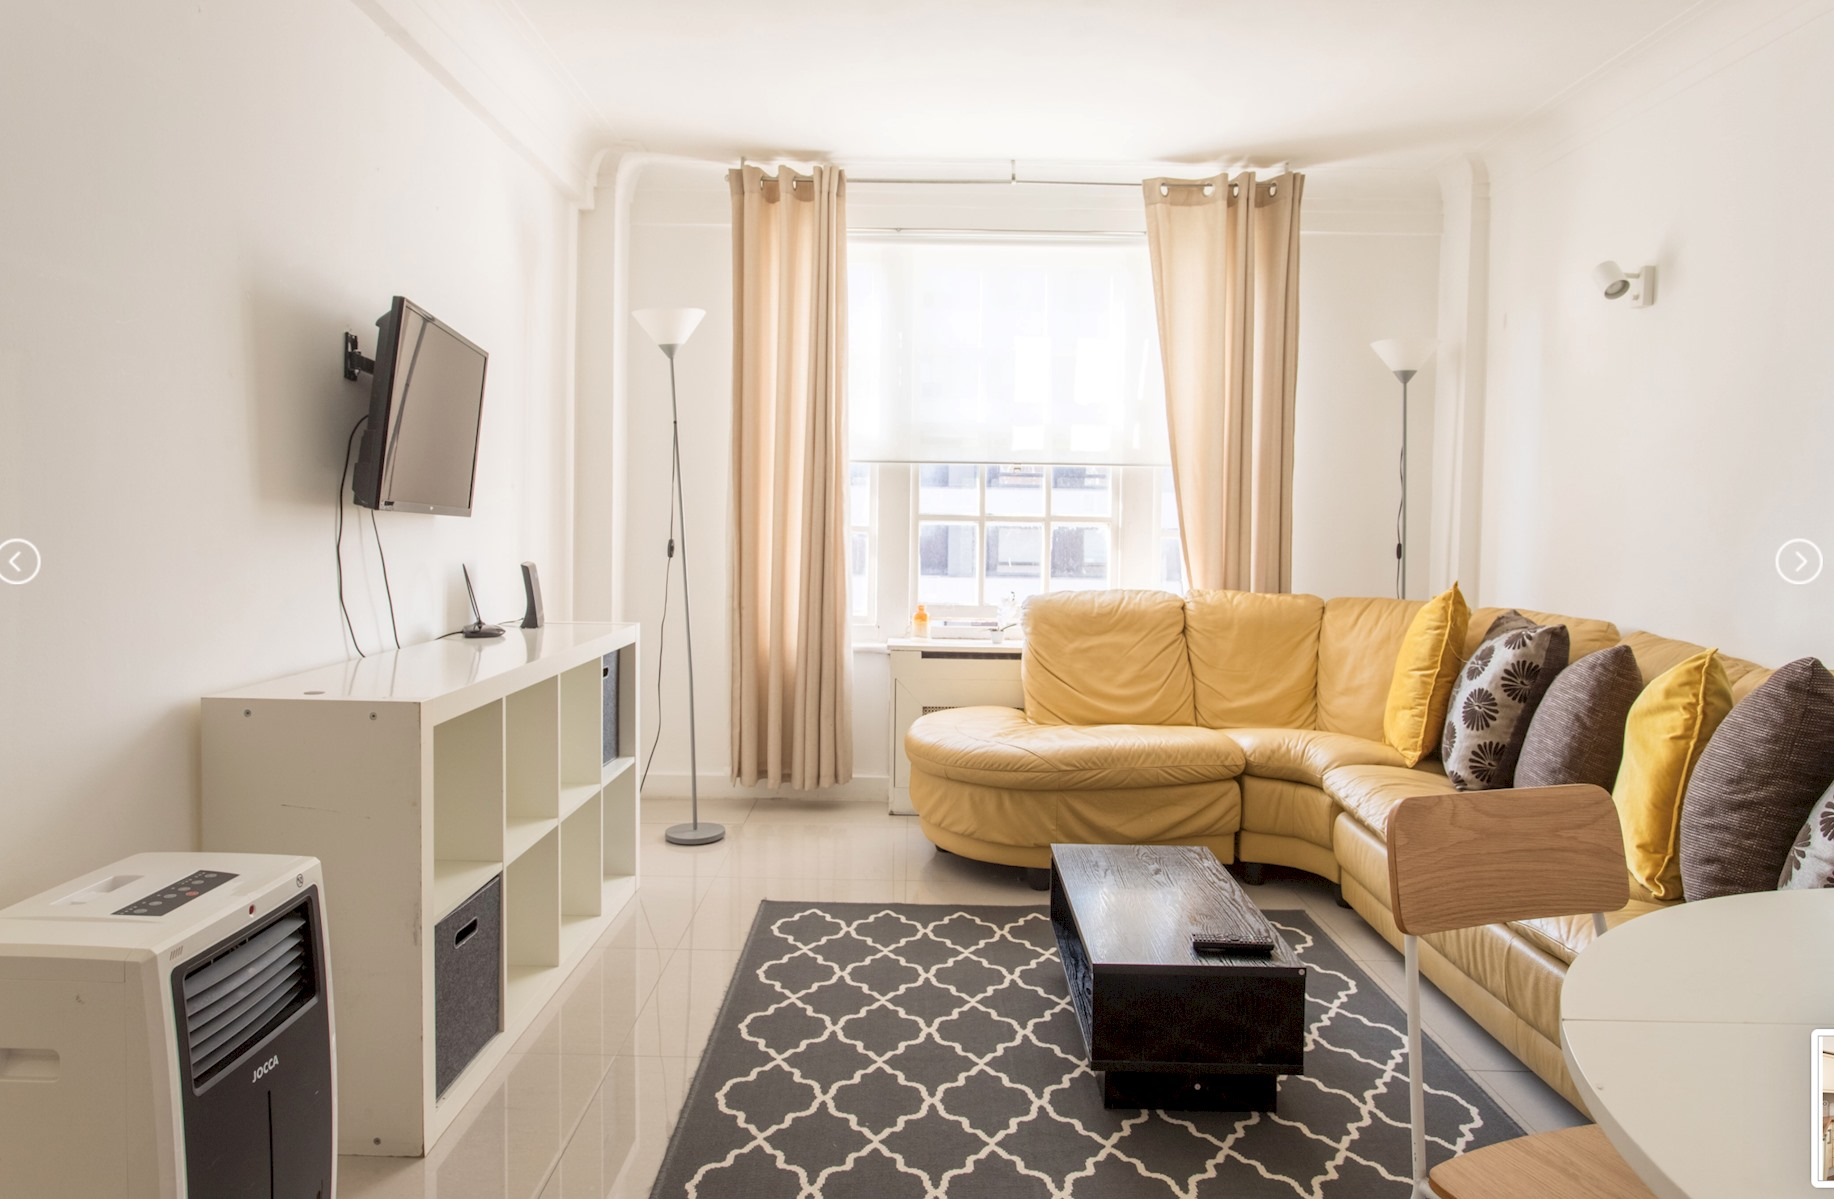 Apartment 3 Bedroom Apartment near Edgware Road   Hyde Park with lift elevator  RU CL  photo 20221886